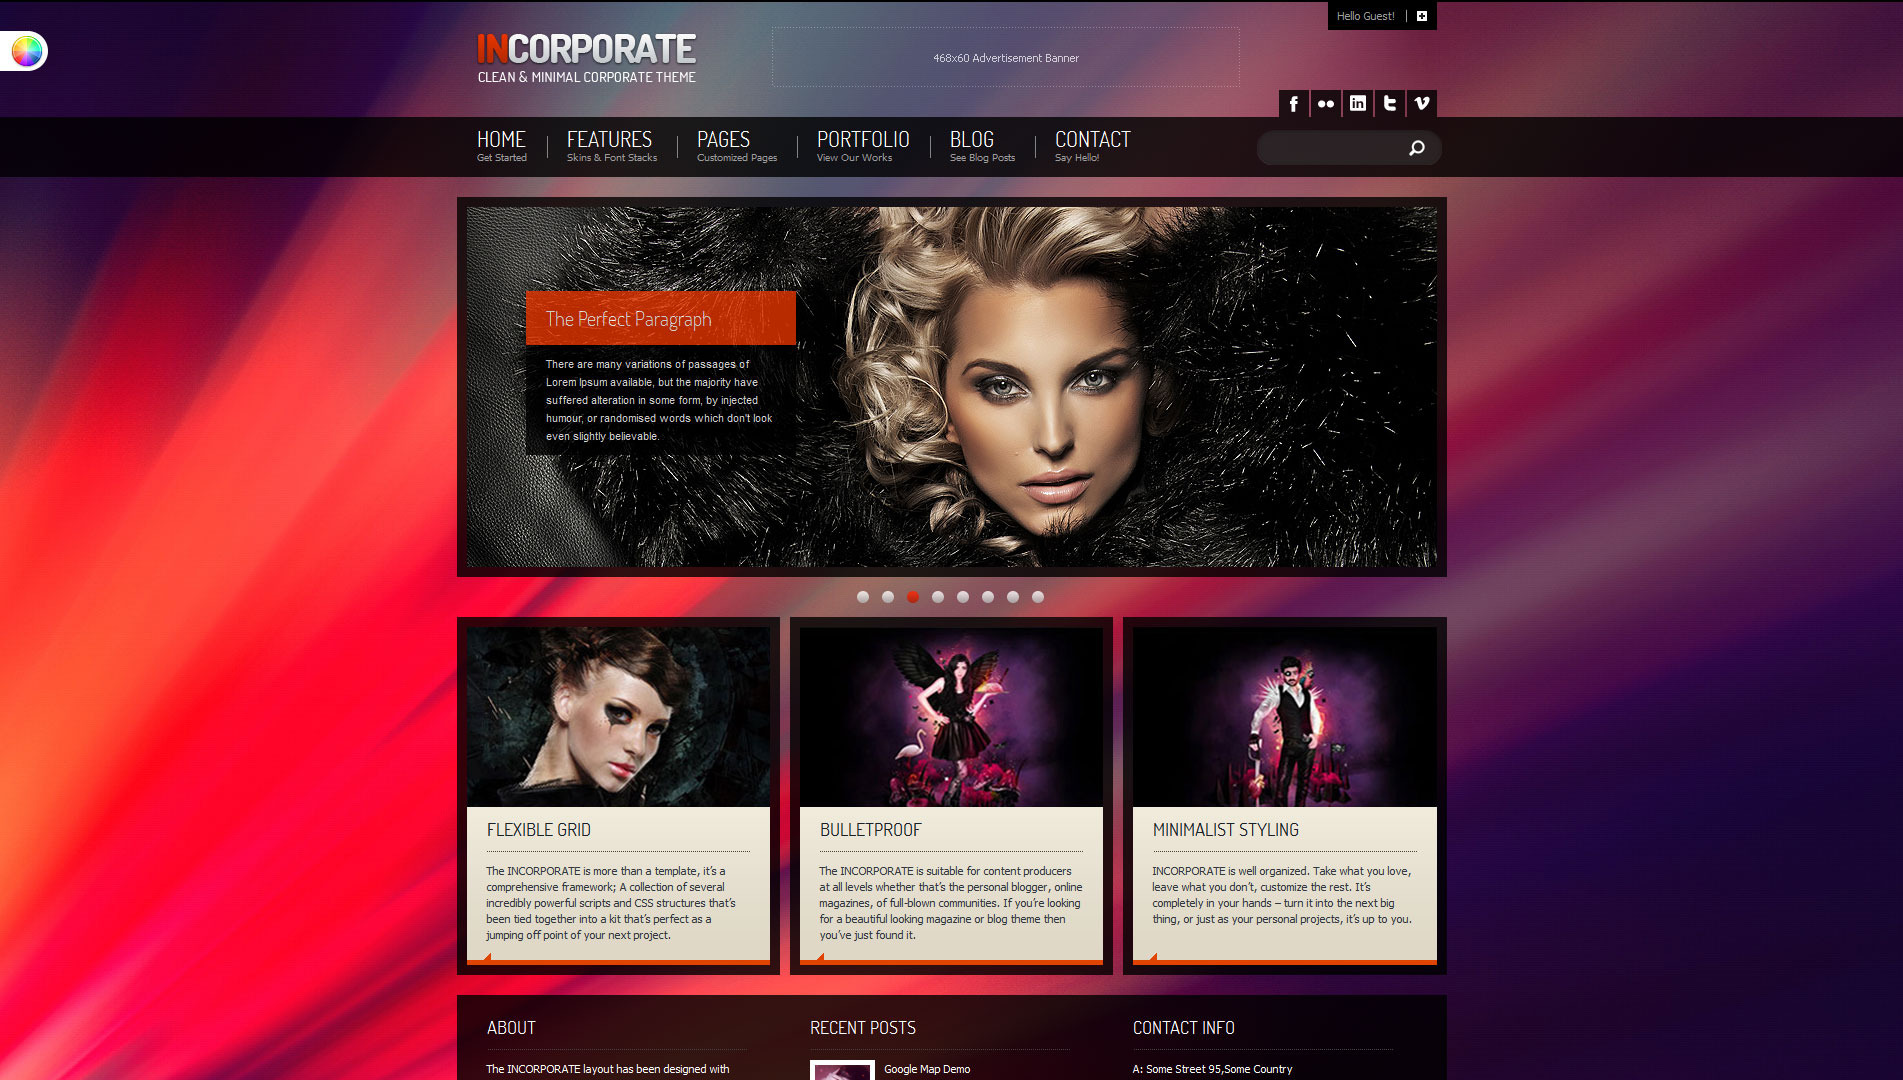 Incorporate WordPress Template - Home Page With Optional High-Res Full Background Image